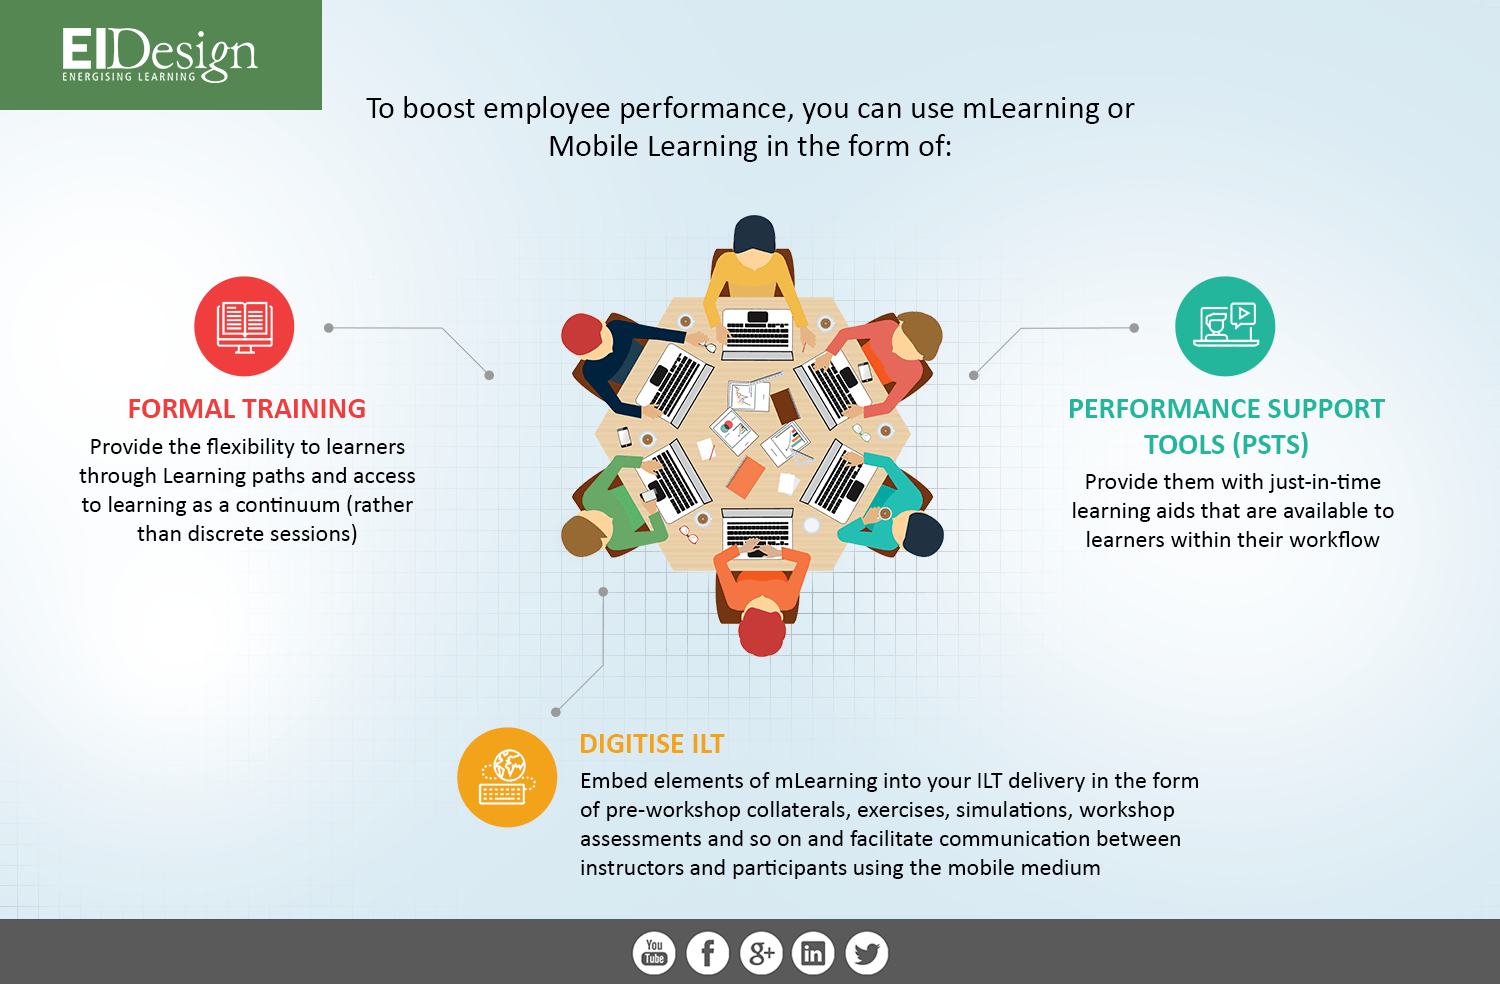 How can you use Mobile Learning or mLearning to boost employee performance